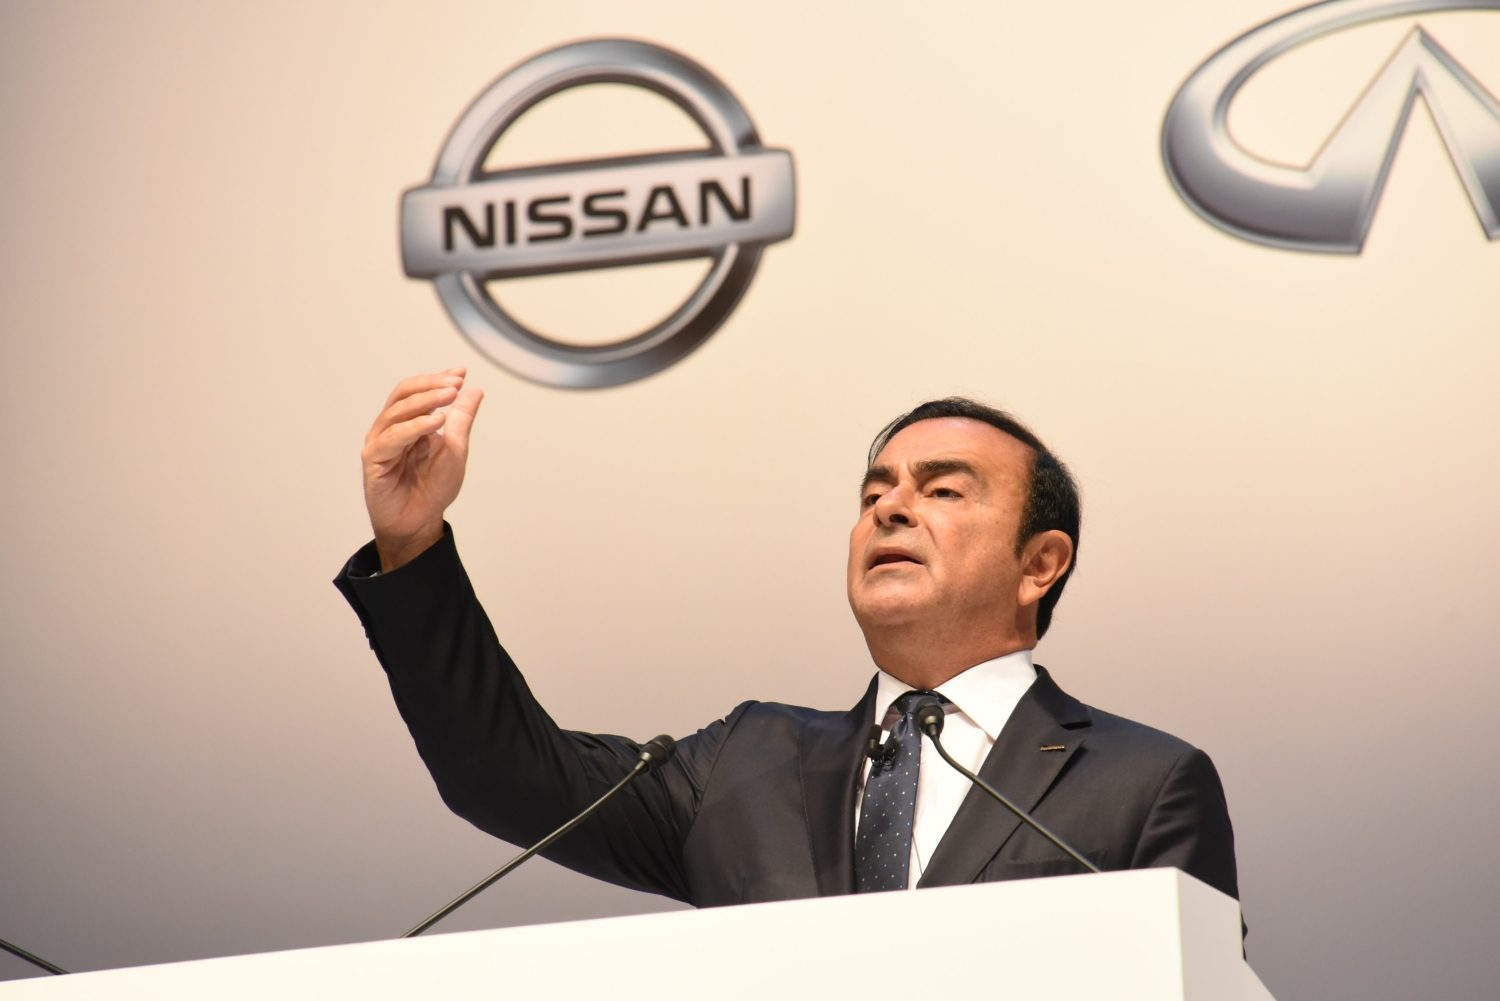 RENAULT – NISSAN – MITSUBISHI INCREASE ANNUAL SYNERGIES TO €5.7 BILLION